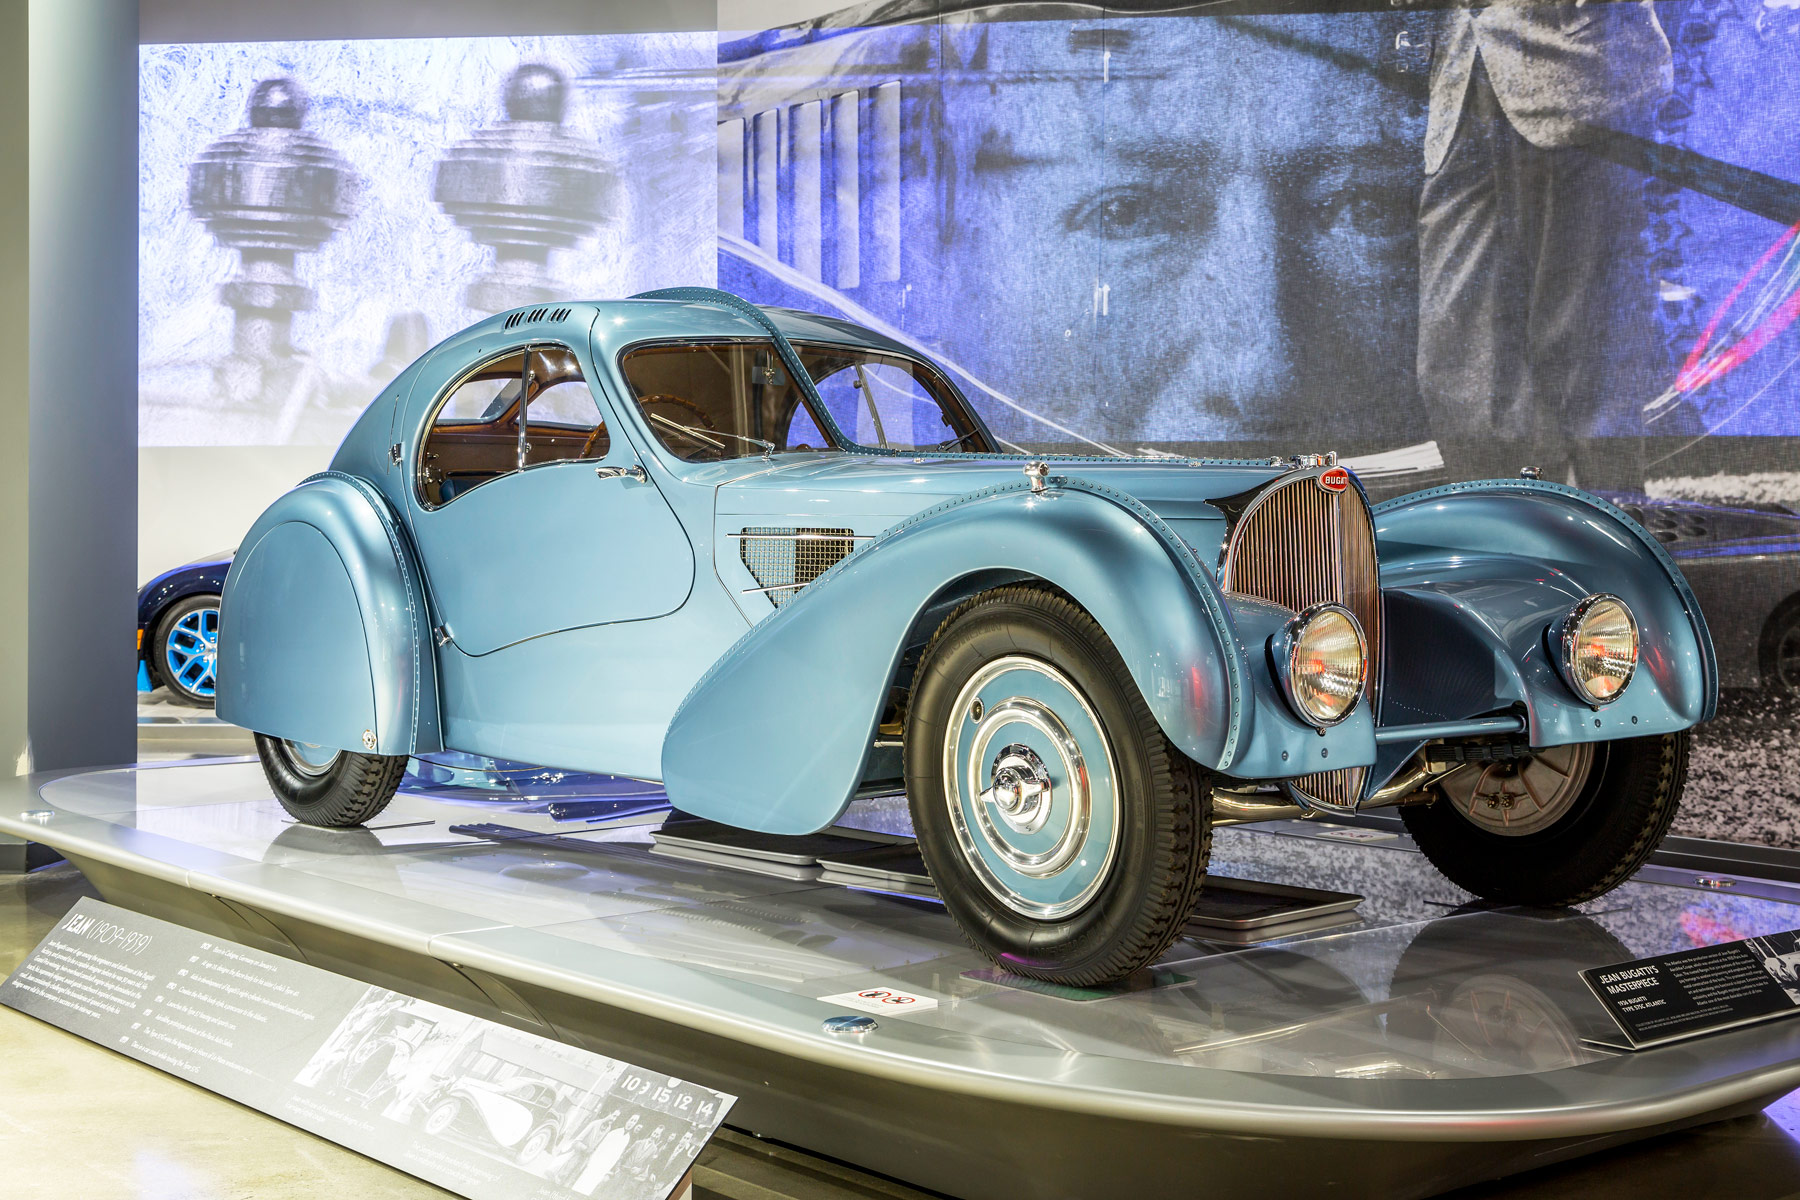 A 1936 Bugatti Type 57SC Atlantic Wins Best Of Show In Arizona